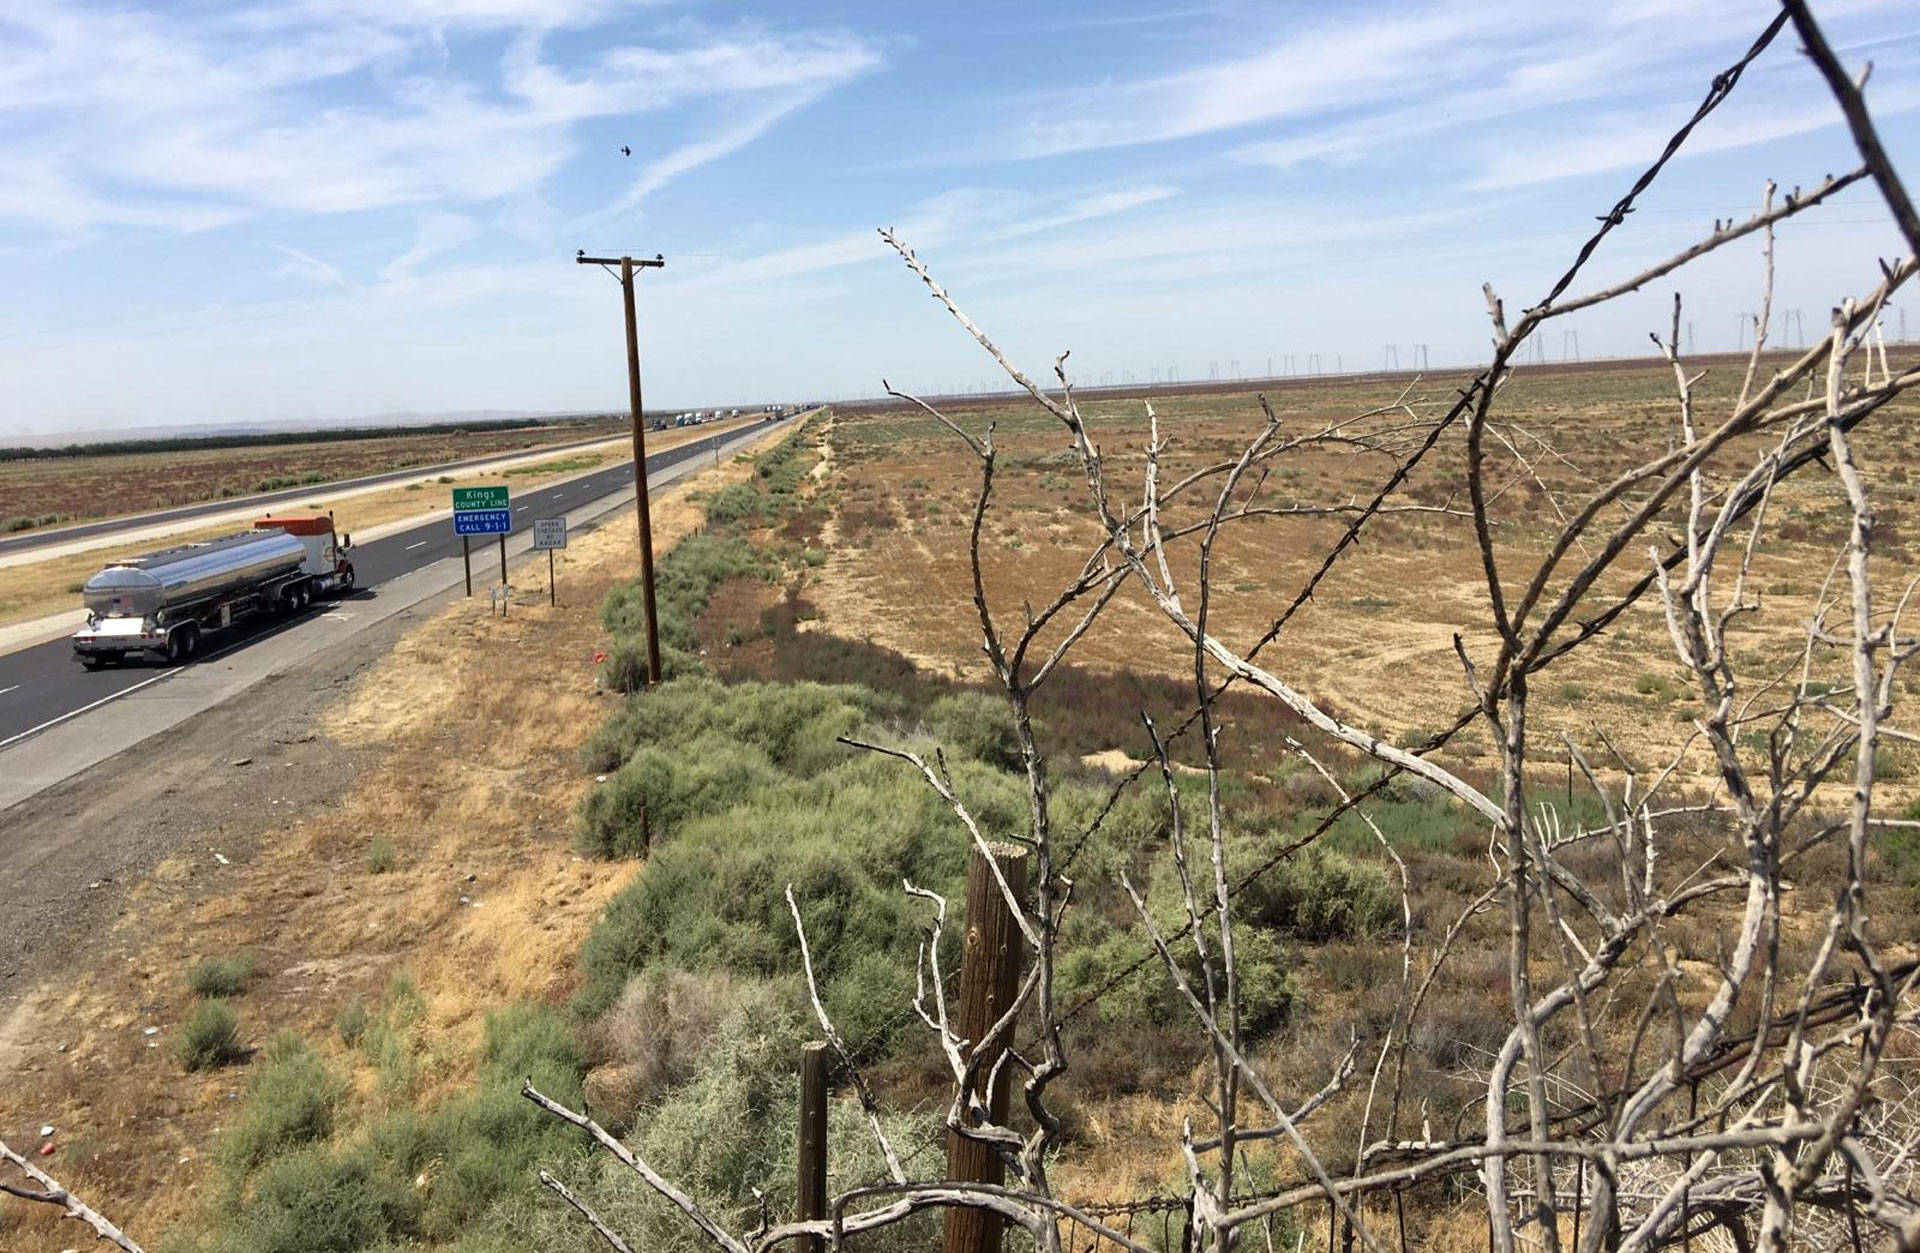 The proposed site for the Quay Valley development is right on the edge of Kern and Kings counties near Interstate 5. Ezra David Romero/KQED